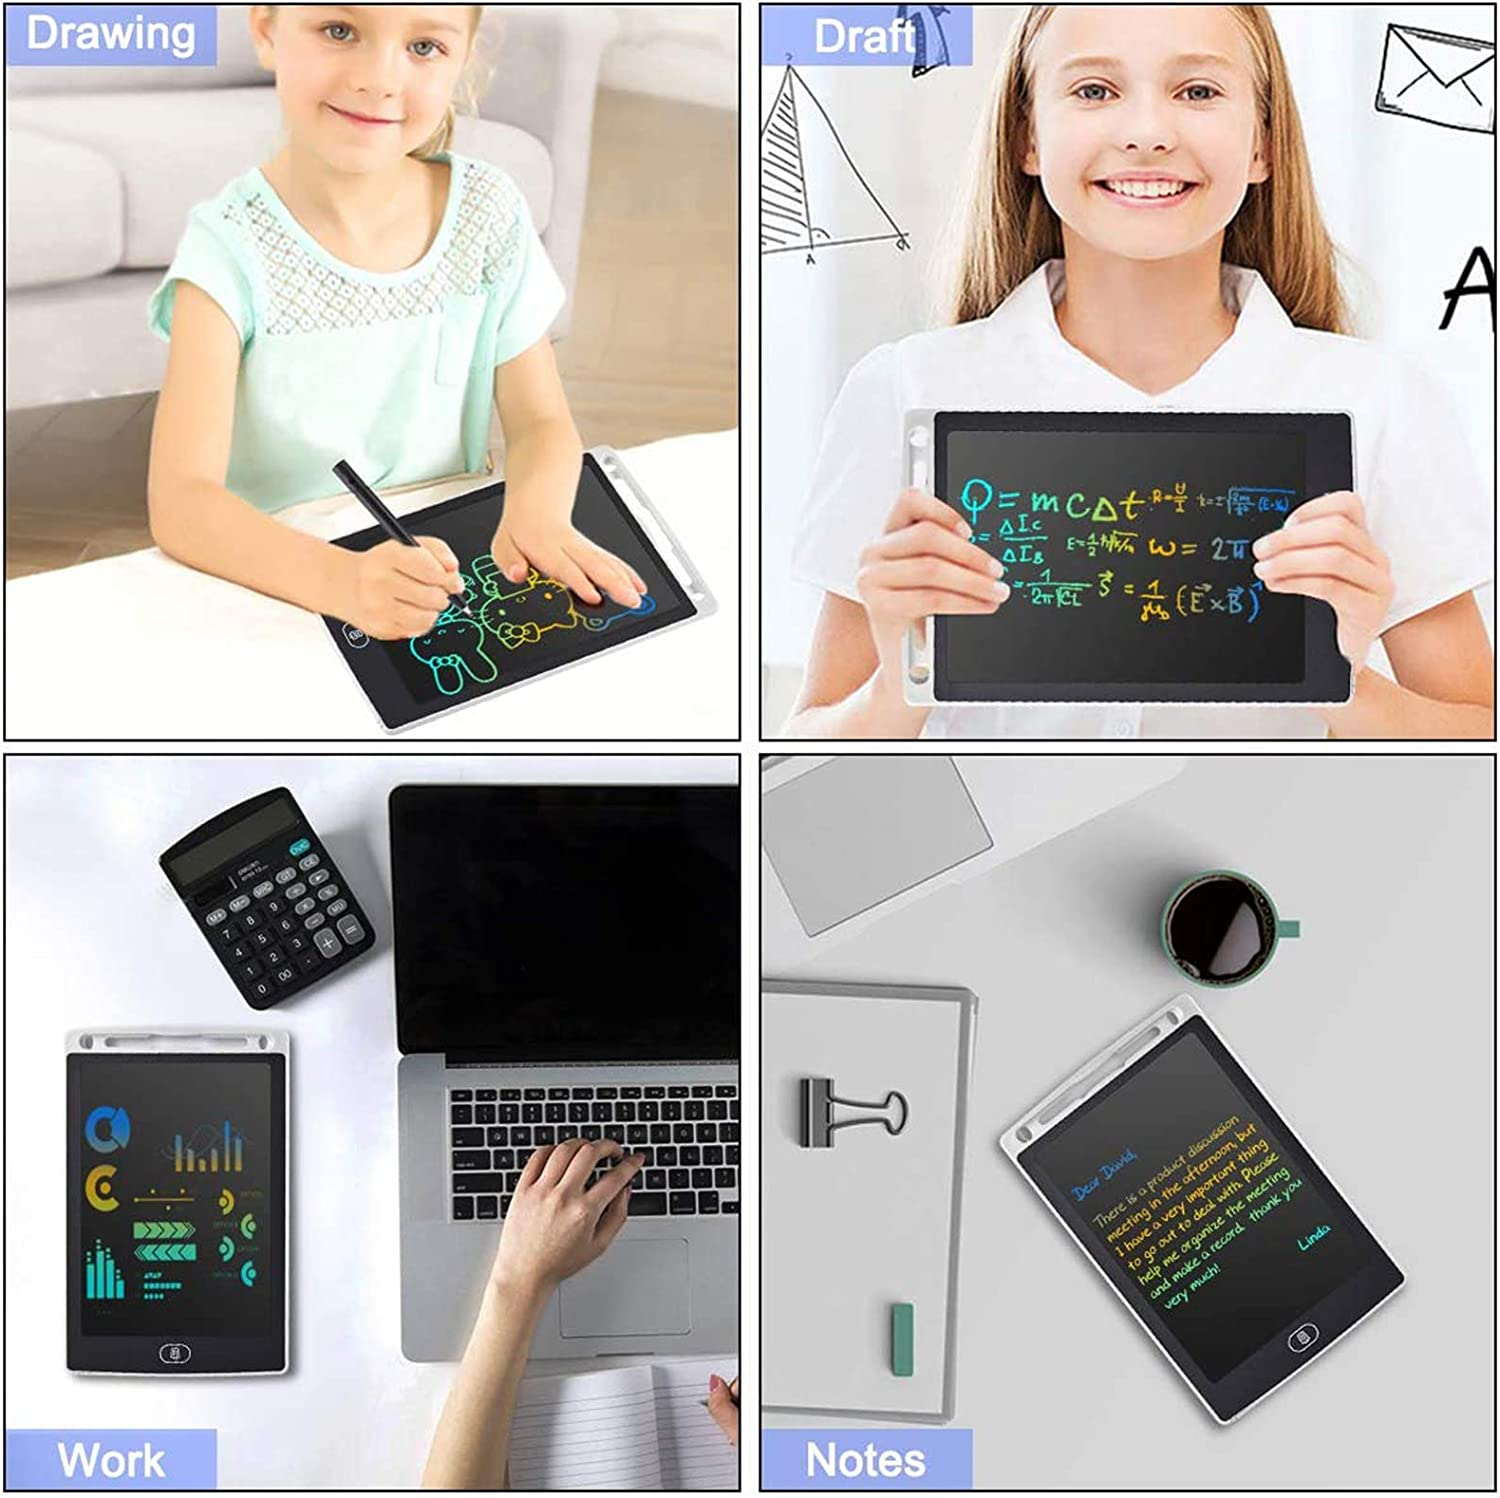 LCD Writing Tablet 12 Inch Colorful Drawing Tablet for Kids Electronic Writing Drawing Pads Portable Doodle Board Gifts for Kids Office Memo Home Whiteboard